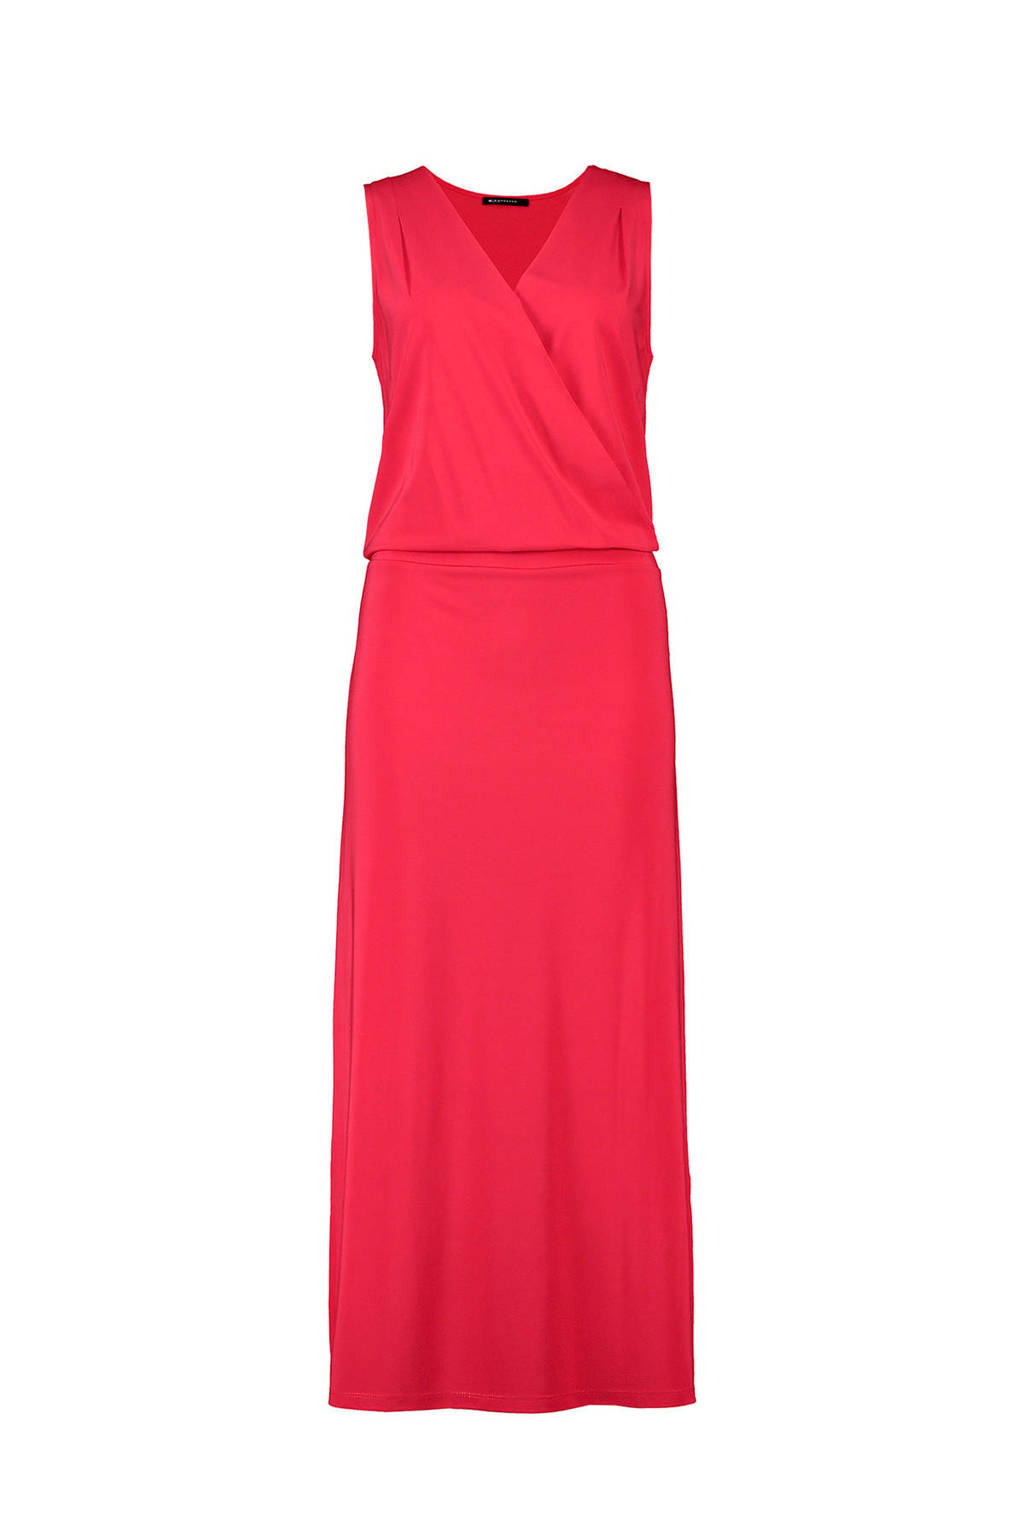 Expresso maxi jurk rood, Rood